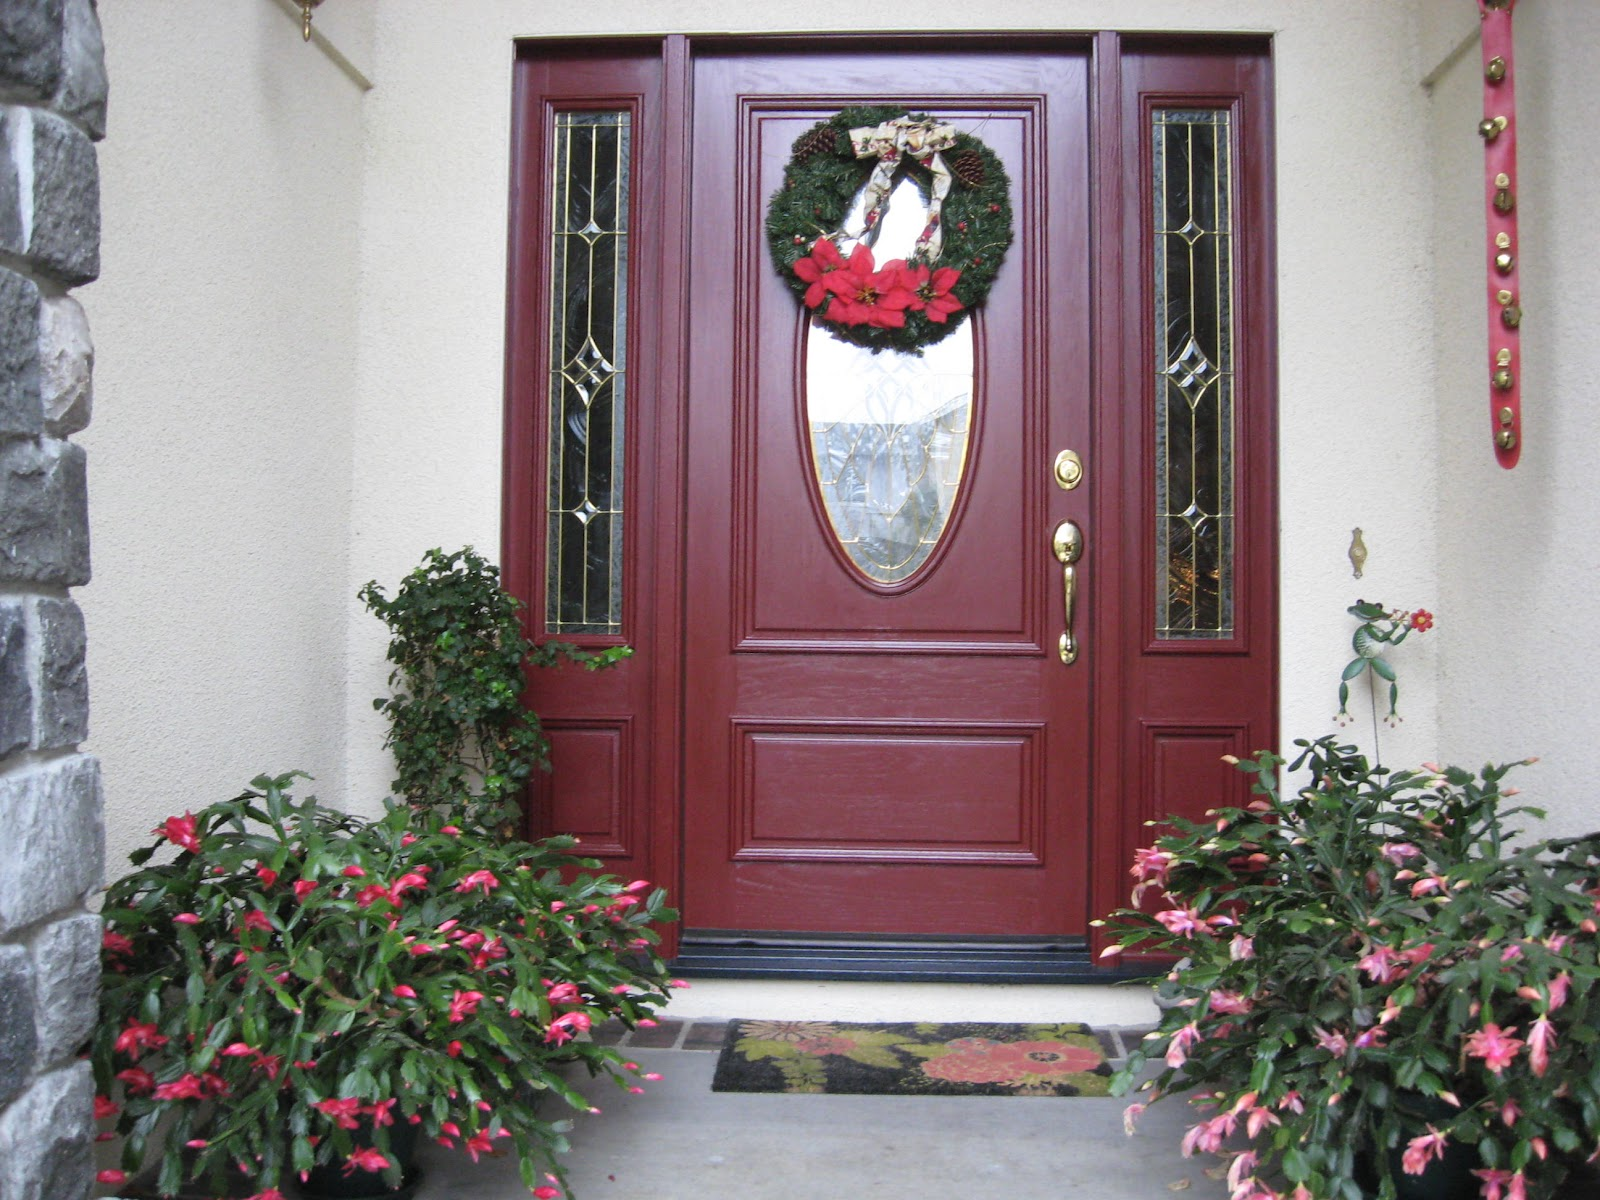 Feng shui by maria most important rooms in feng shui - Feng shui front door colors ...